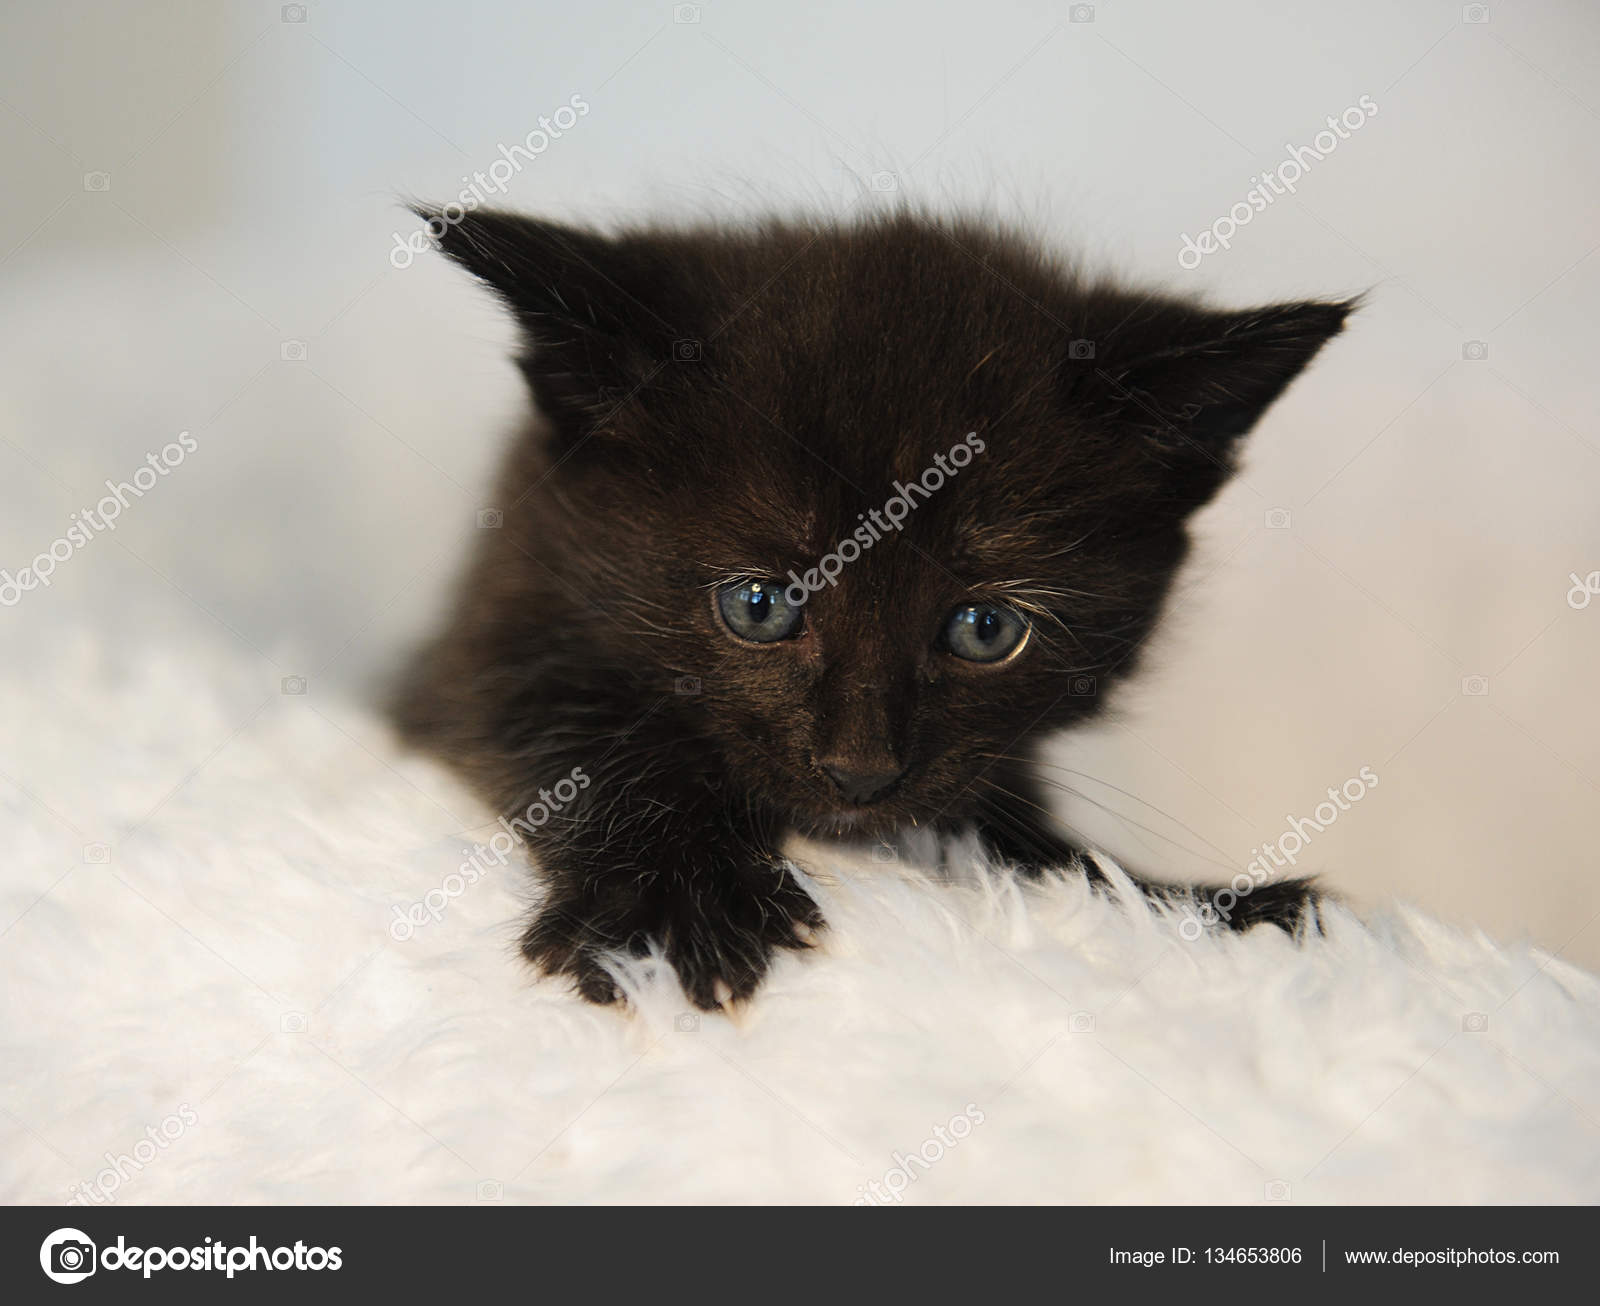 black kitten peeking out of a white fluffy chair Christmas mood